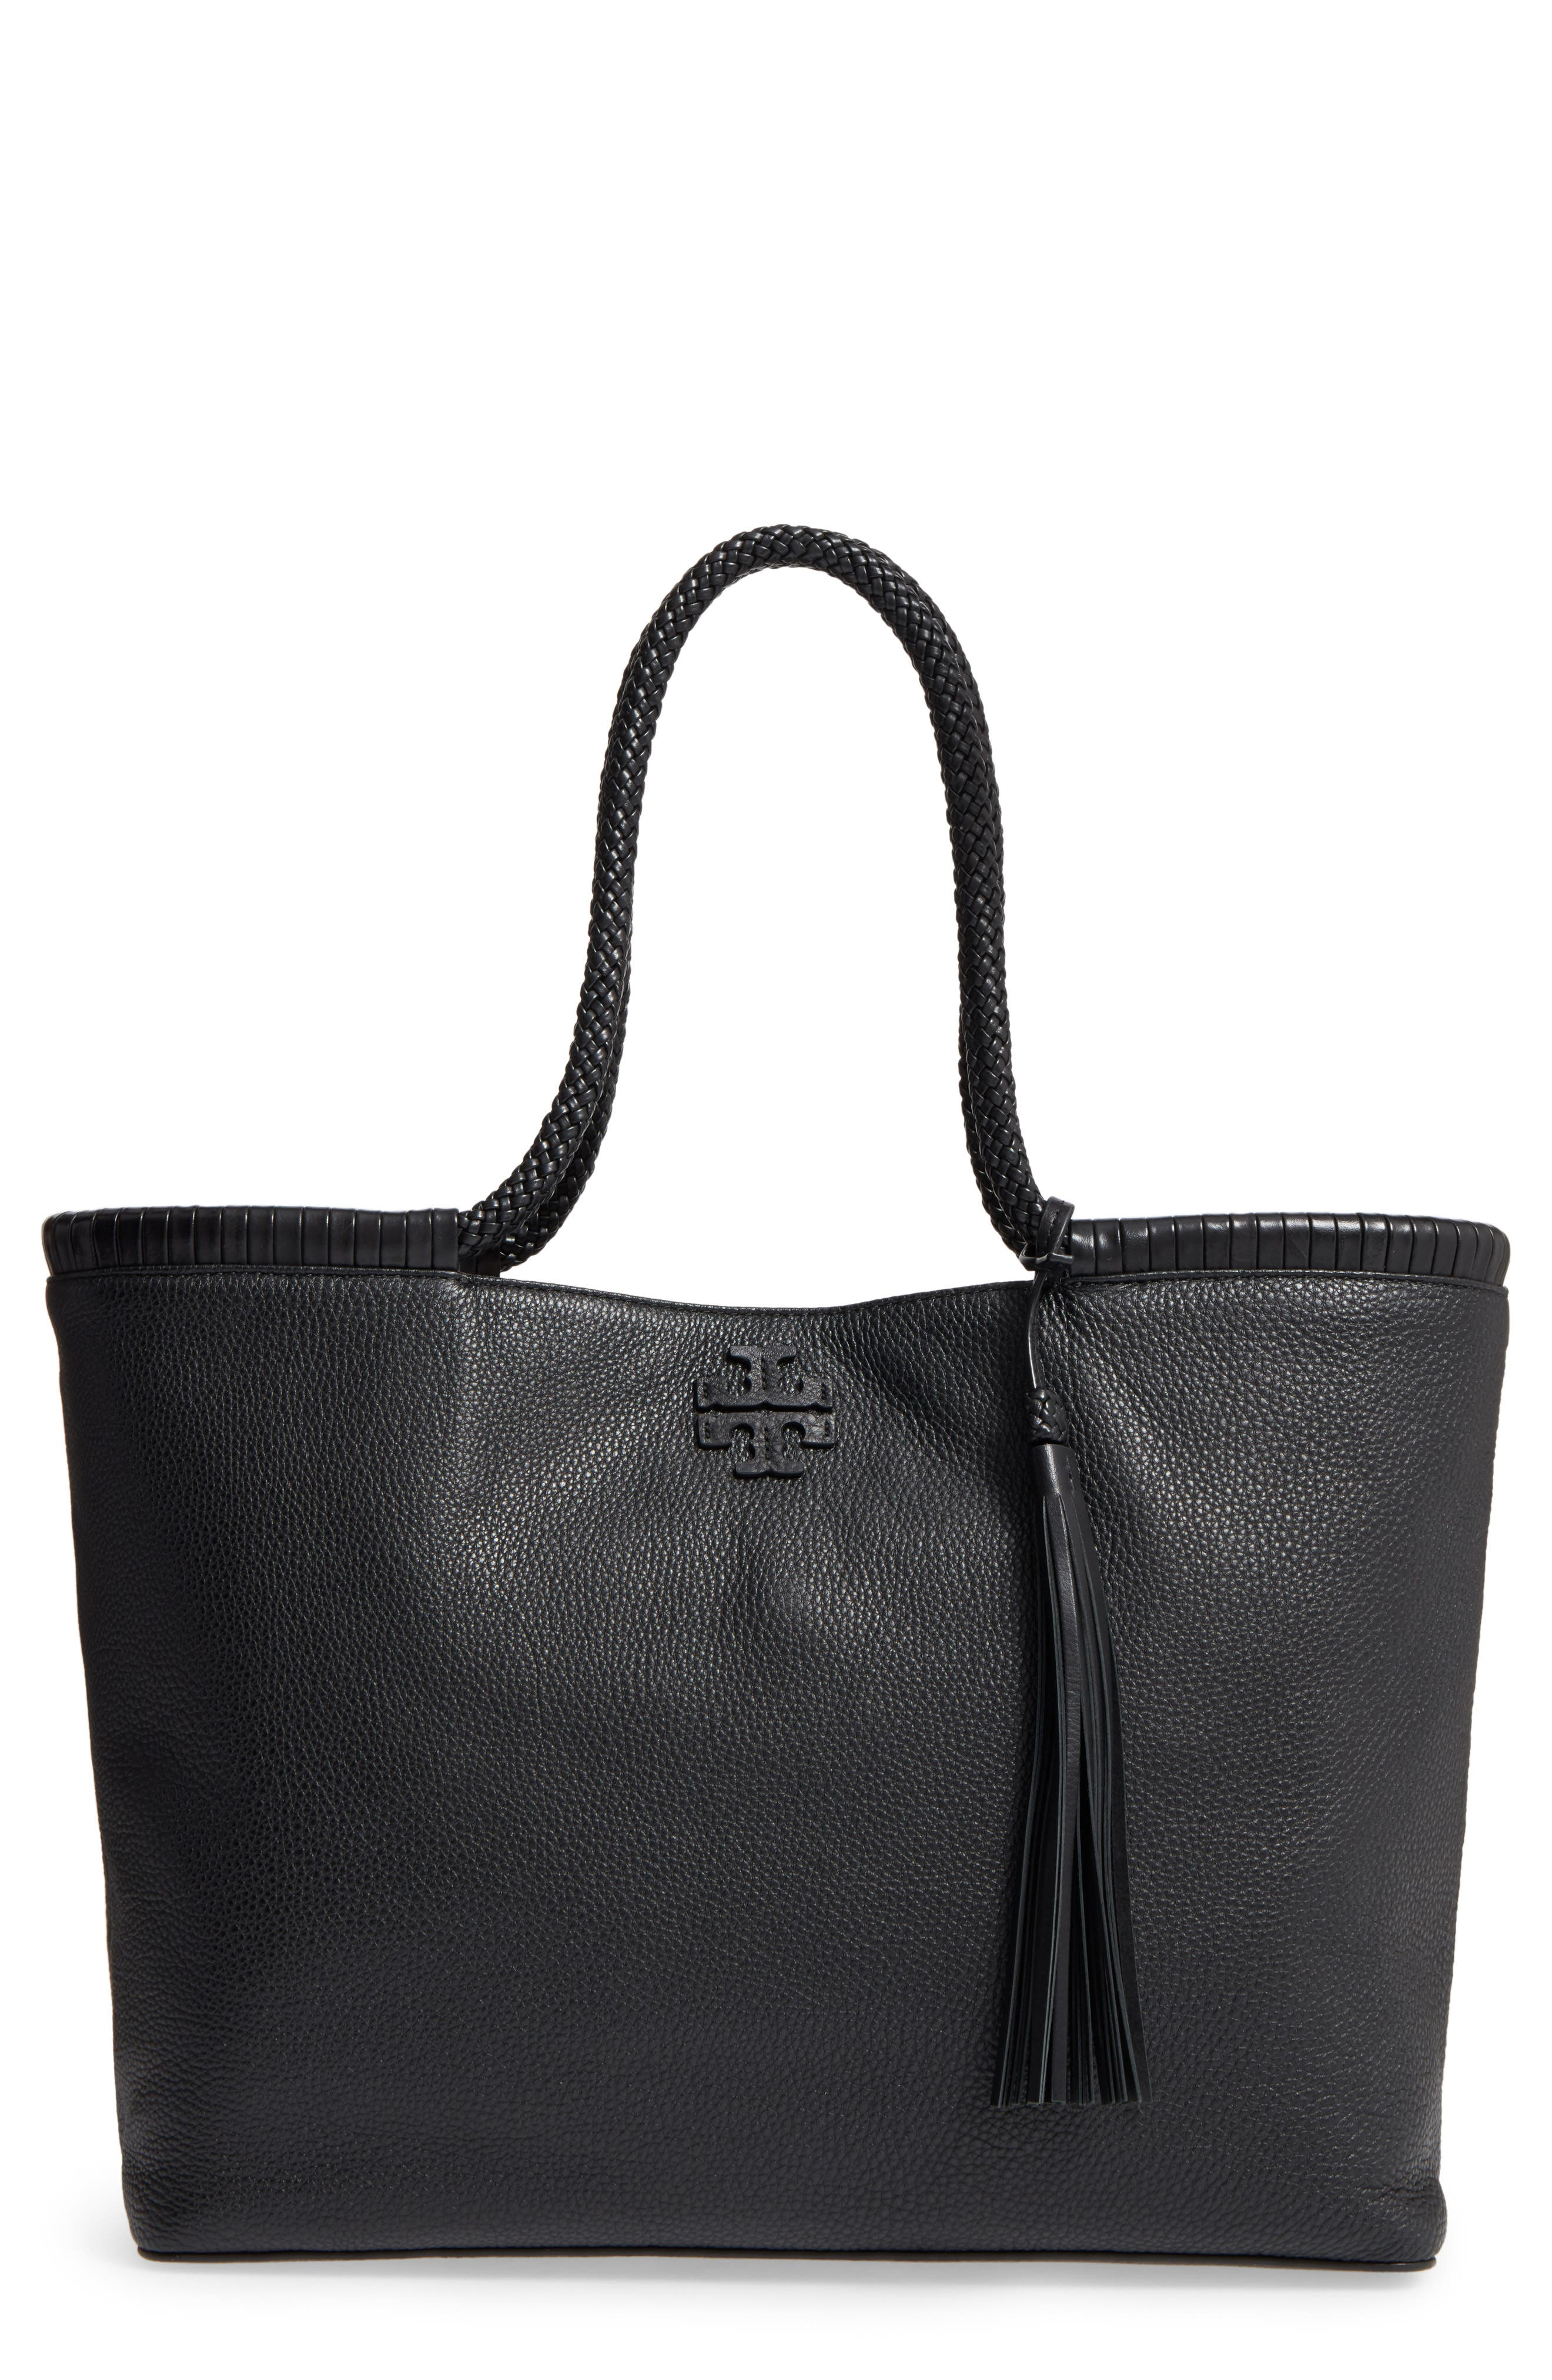 Tory Burch Taylor Leather Tote